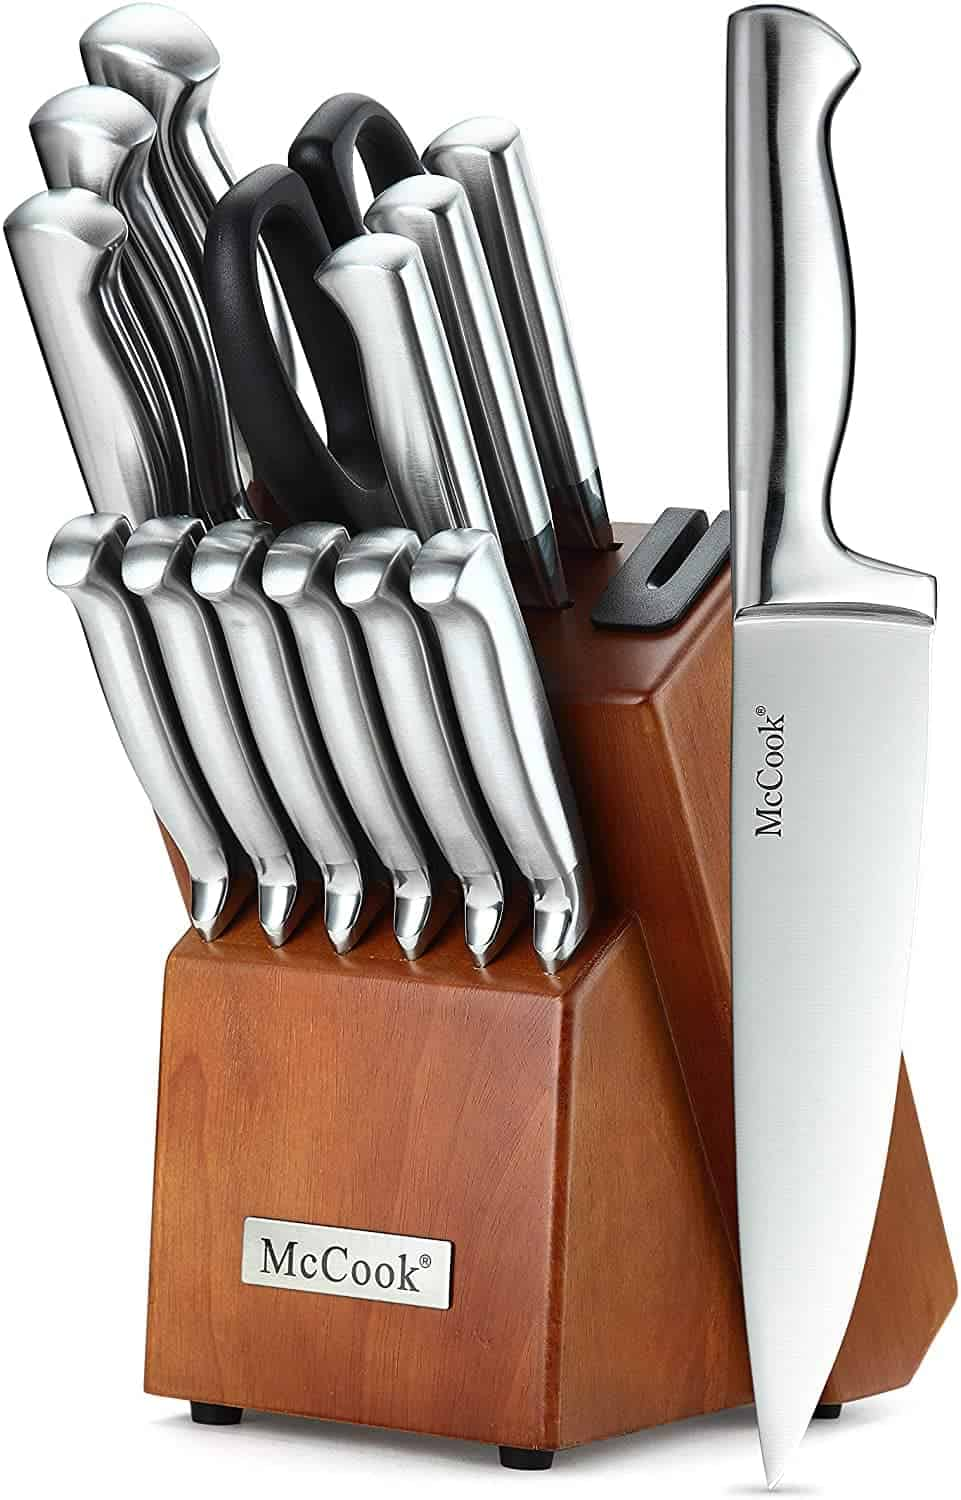 McCook Stainless Steel Kitchen Knives